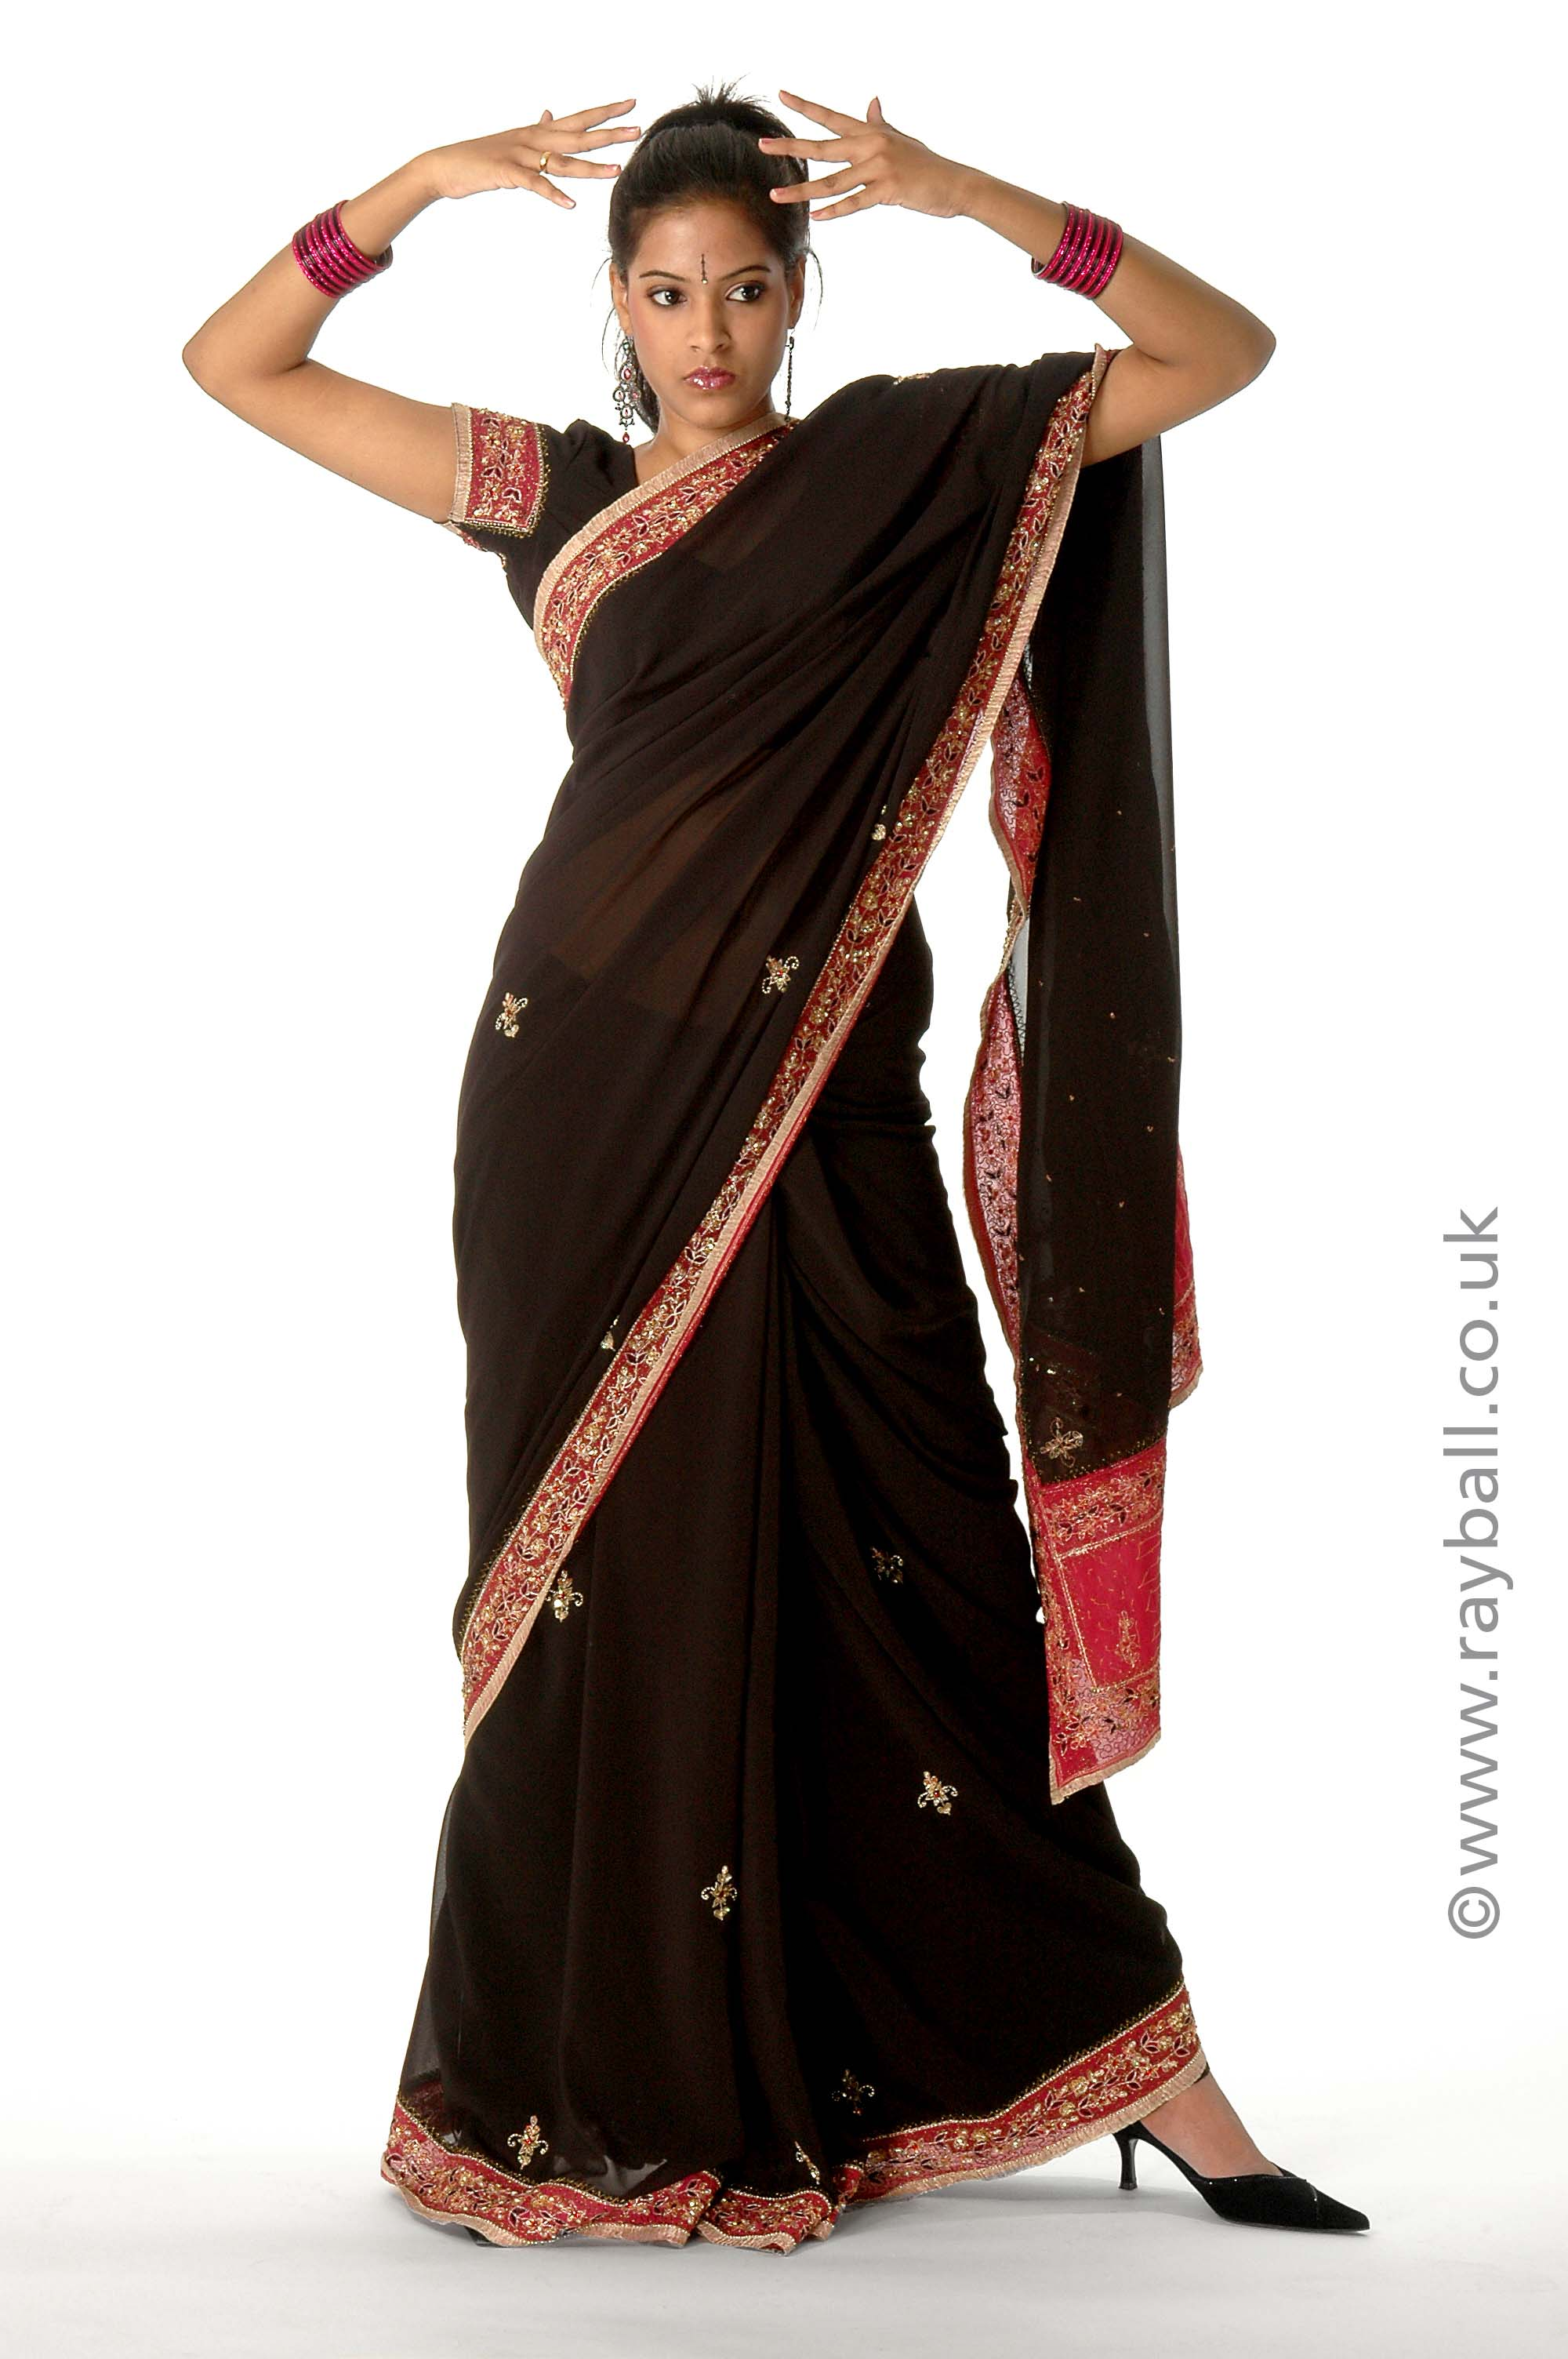 Tadworth model in sari at Epsom Photography KT18.